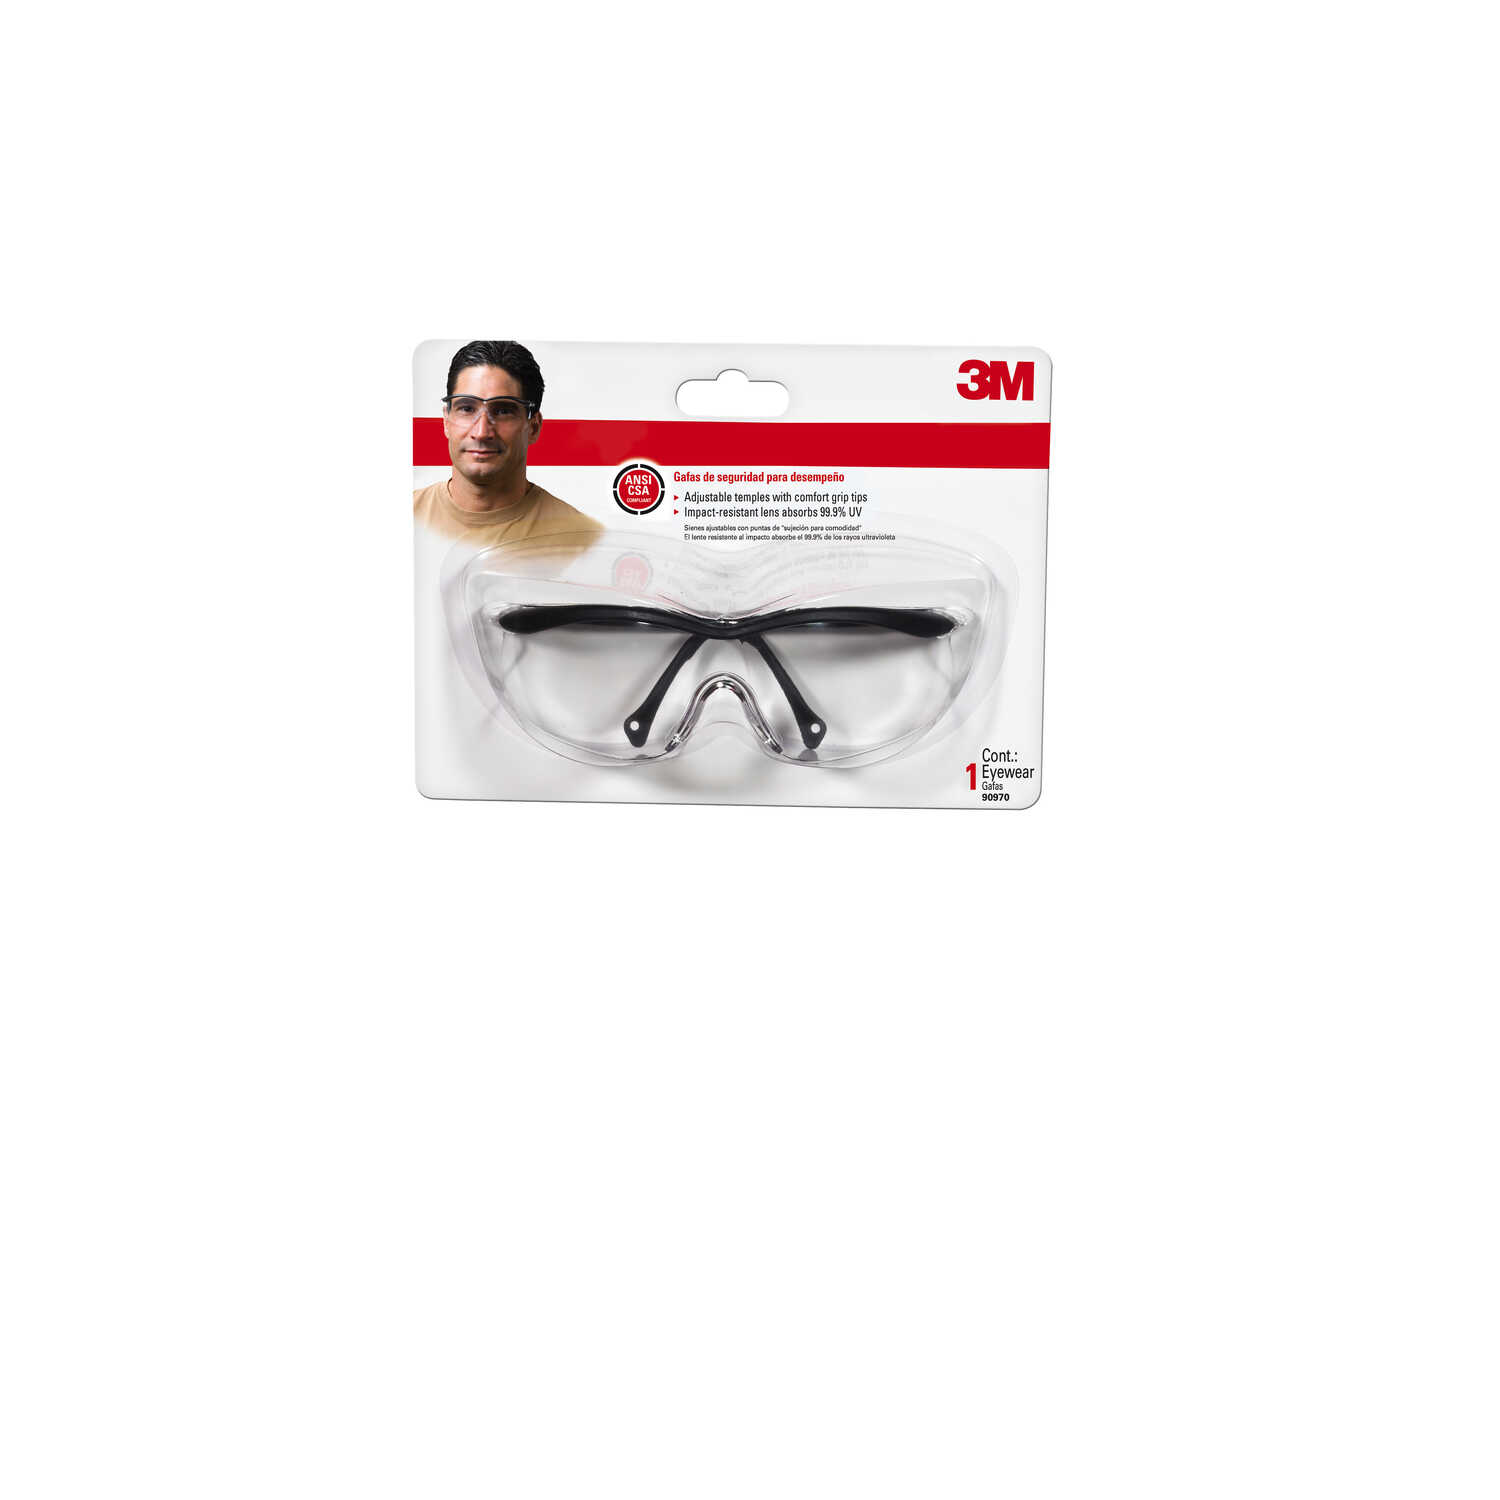 3M  Impact-Resistant Safety Glasses  Clear Lens Black Frame 1 pc.